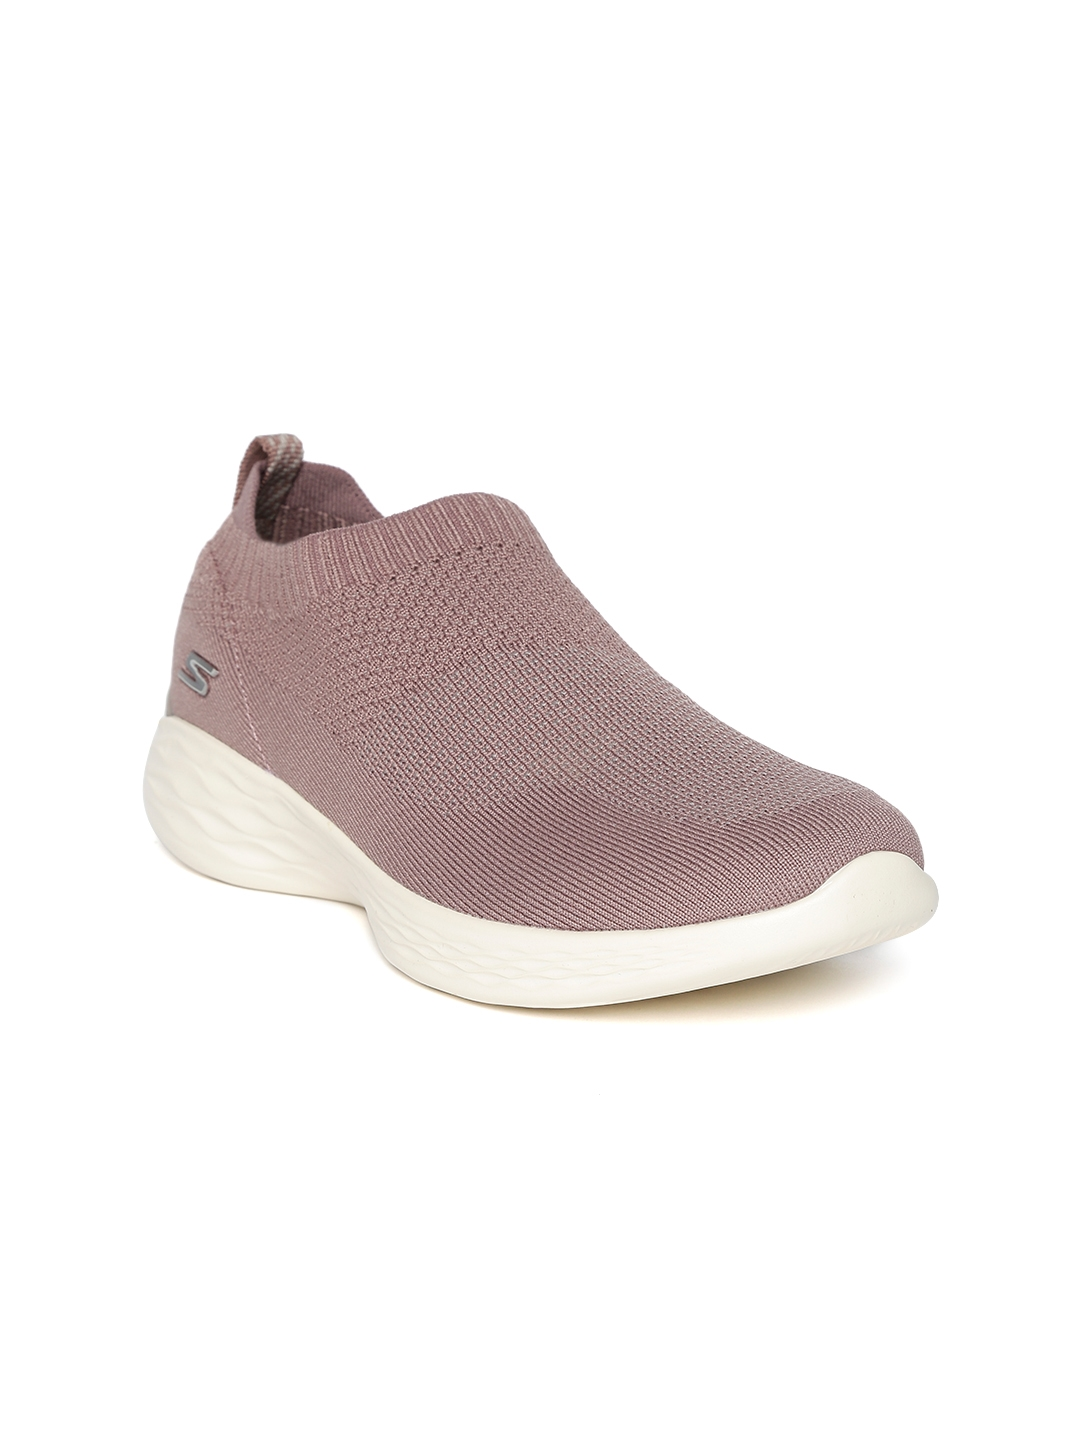 ce7e74ab8a4 Buy Skechers Women Mauve You Slip Ons - Casual Shoes for Women ...